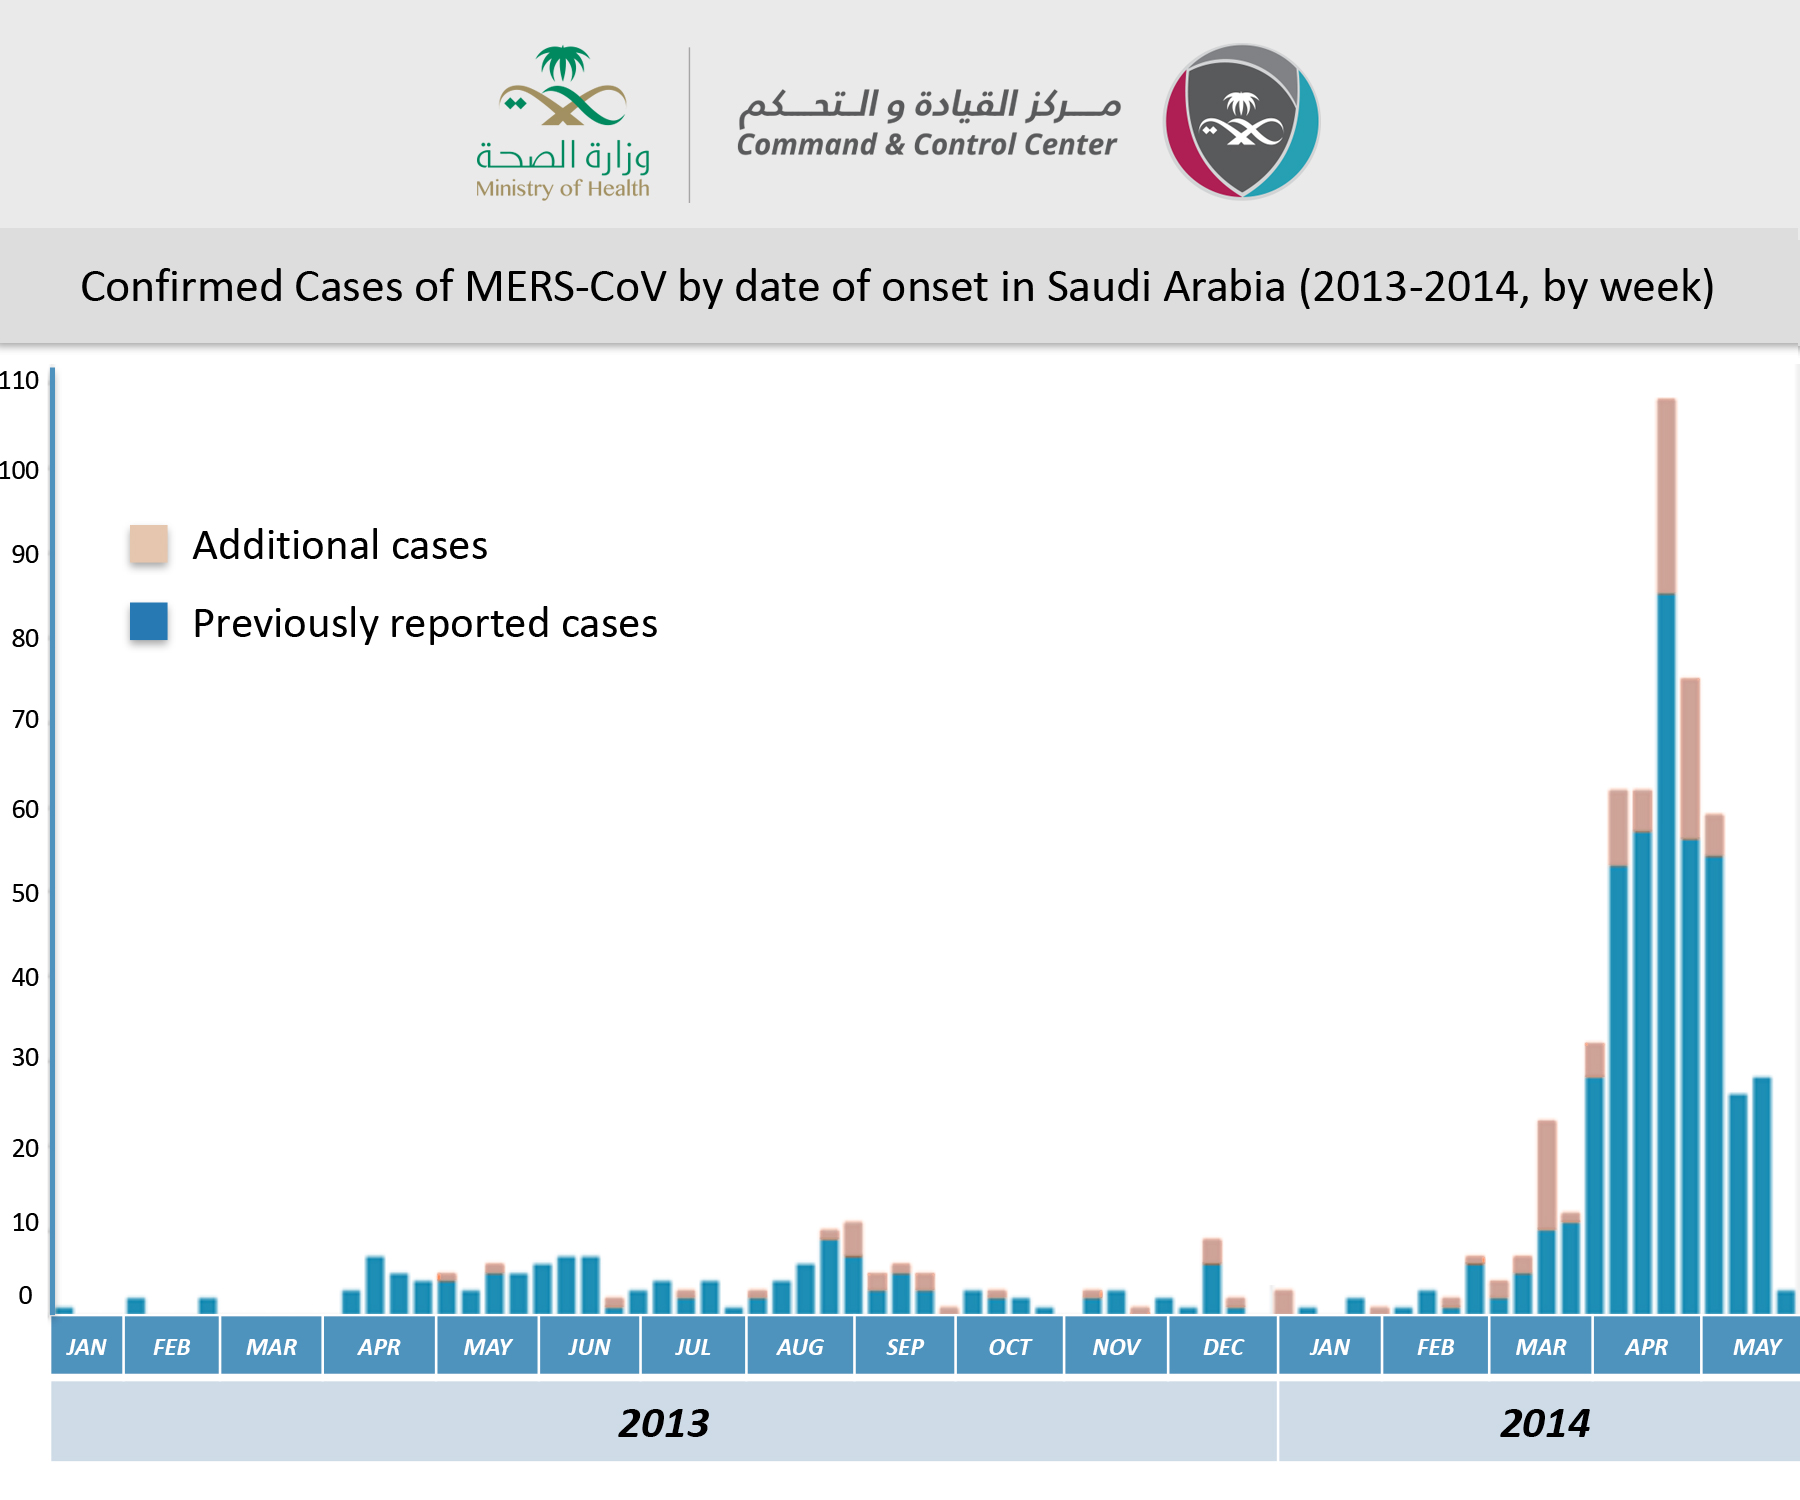 MERS-CoV-by-onset-in-Saudi-Arabia---2-June-2014-ENGLISH.jpg